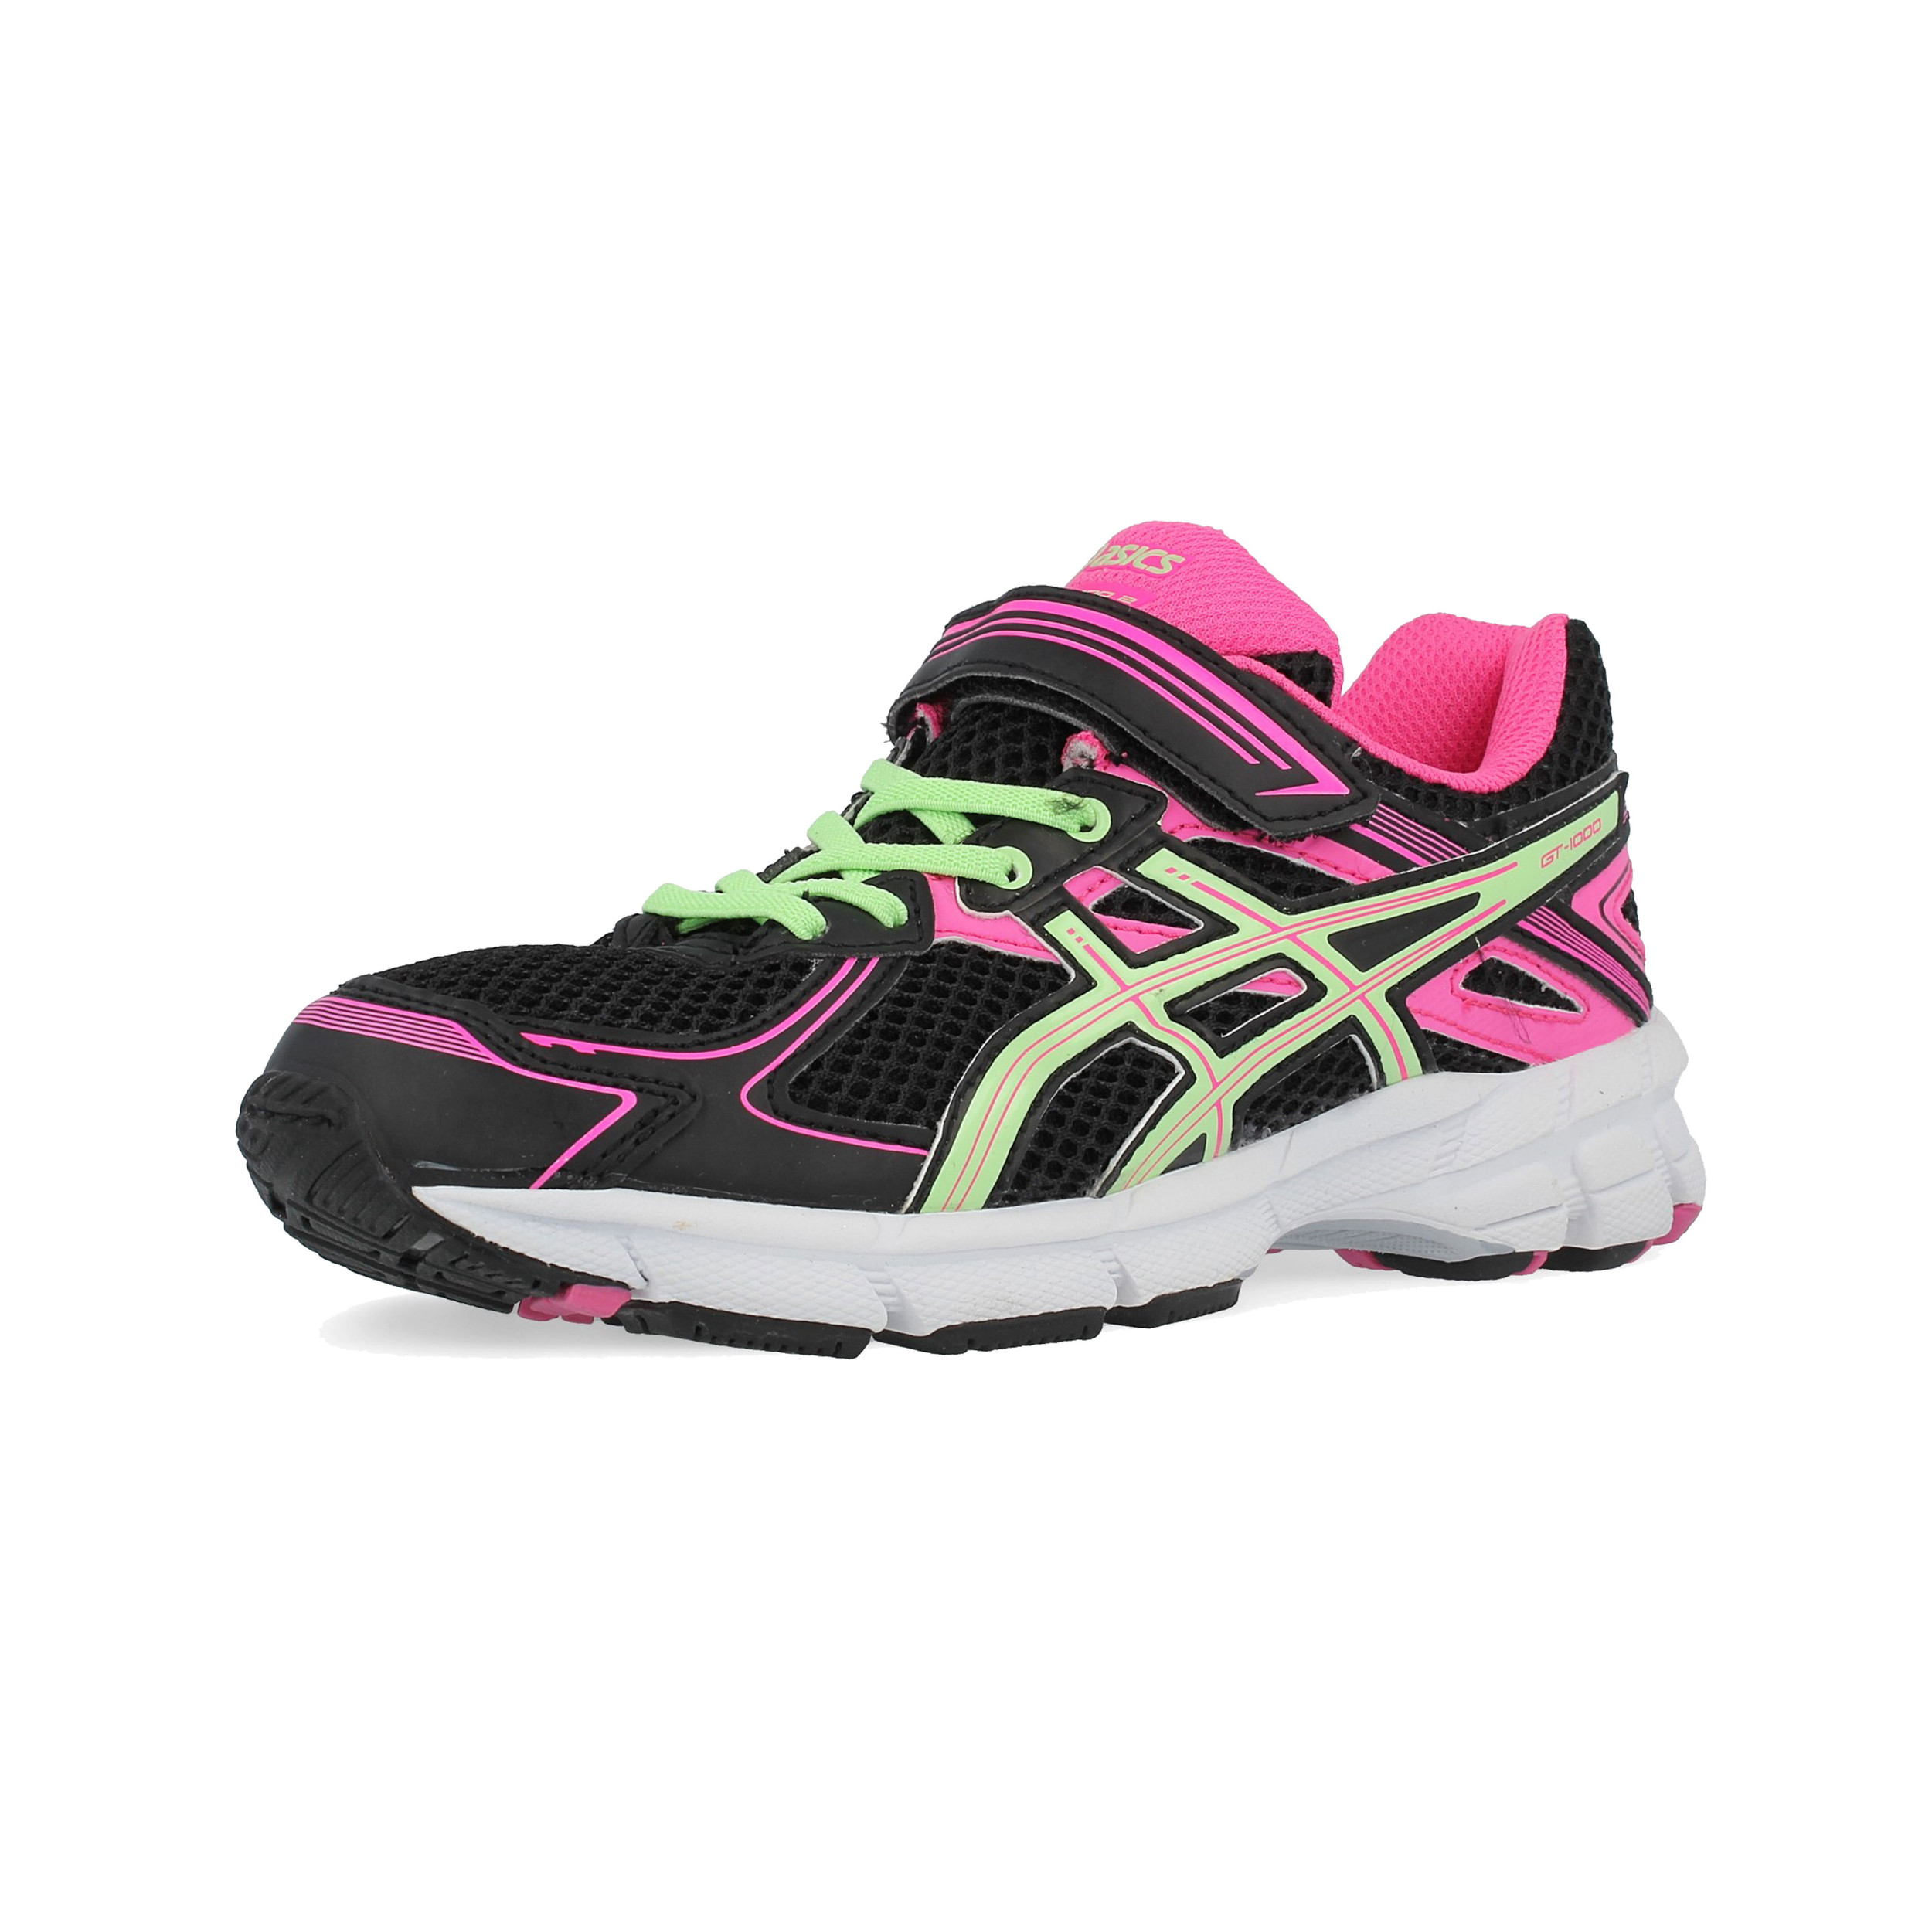 1579aff1a23a Details about Asics Junior GT-1000 2 PS Running Shoes Trainers Sneakers  Black Sports